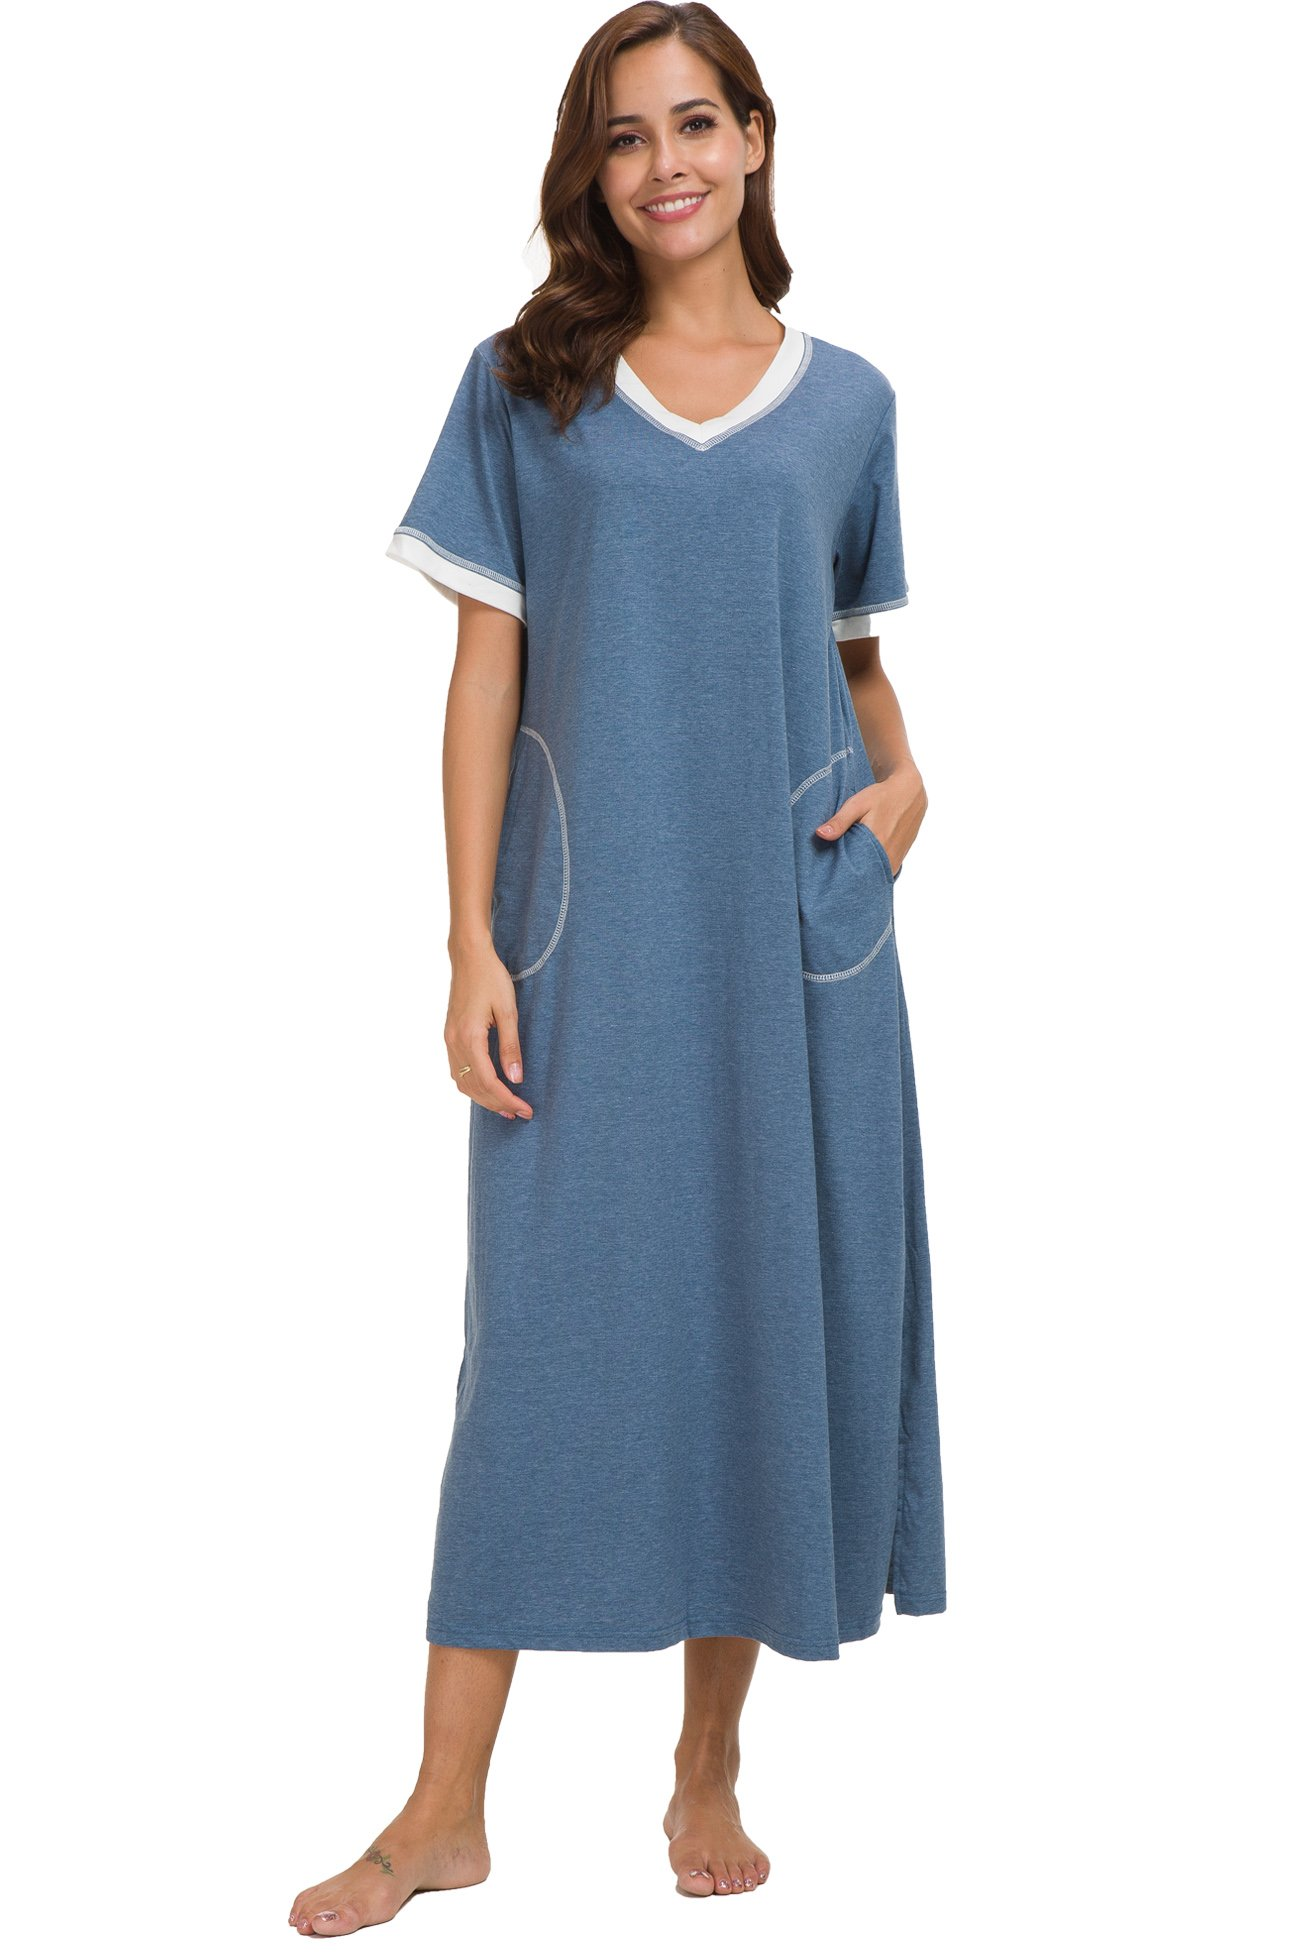 Supermamas Long Nightgown Womens Cotton Knit Short Sleeve Nightshirt with Pockets(Blue, XL)